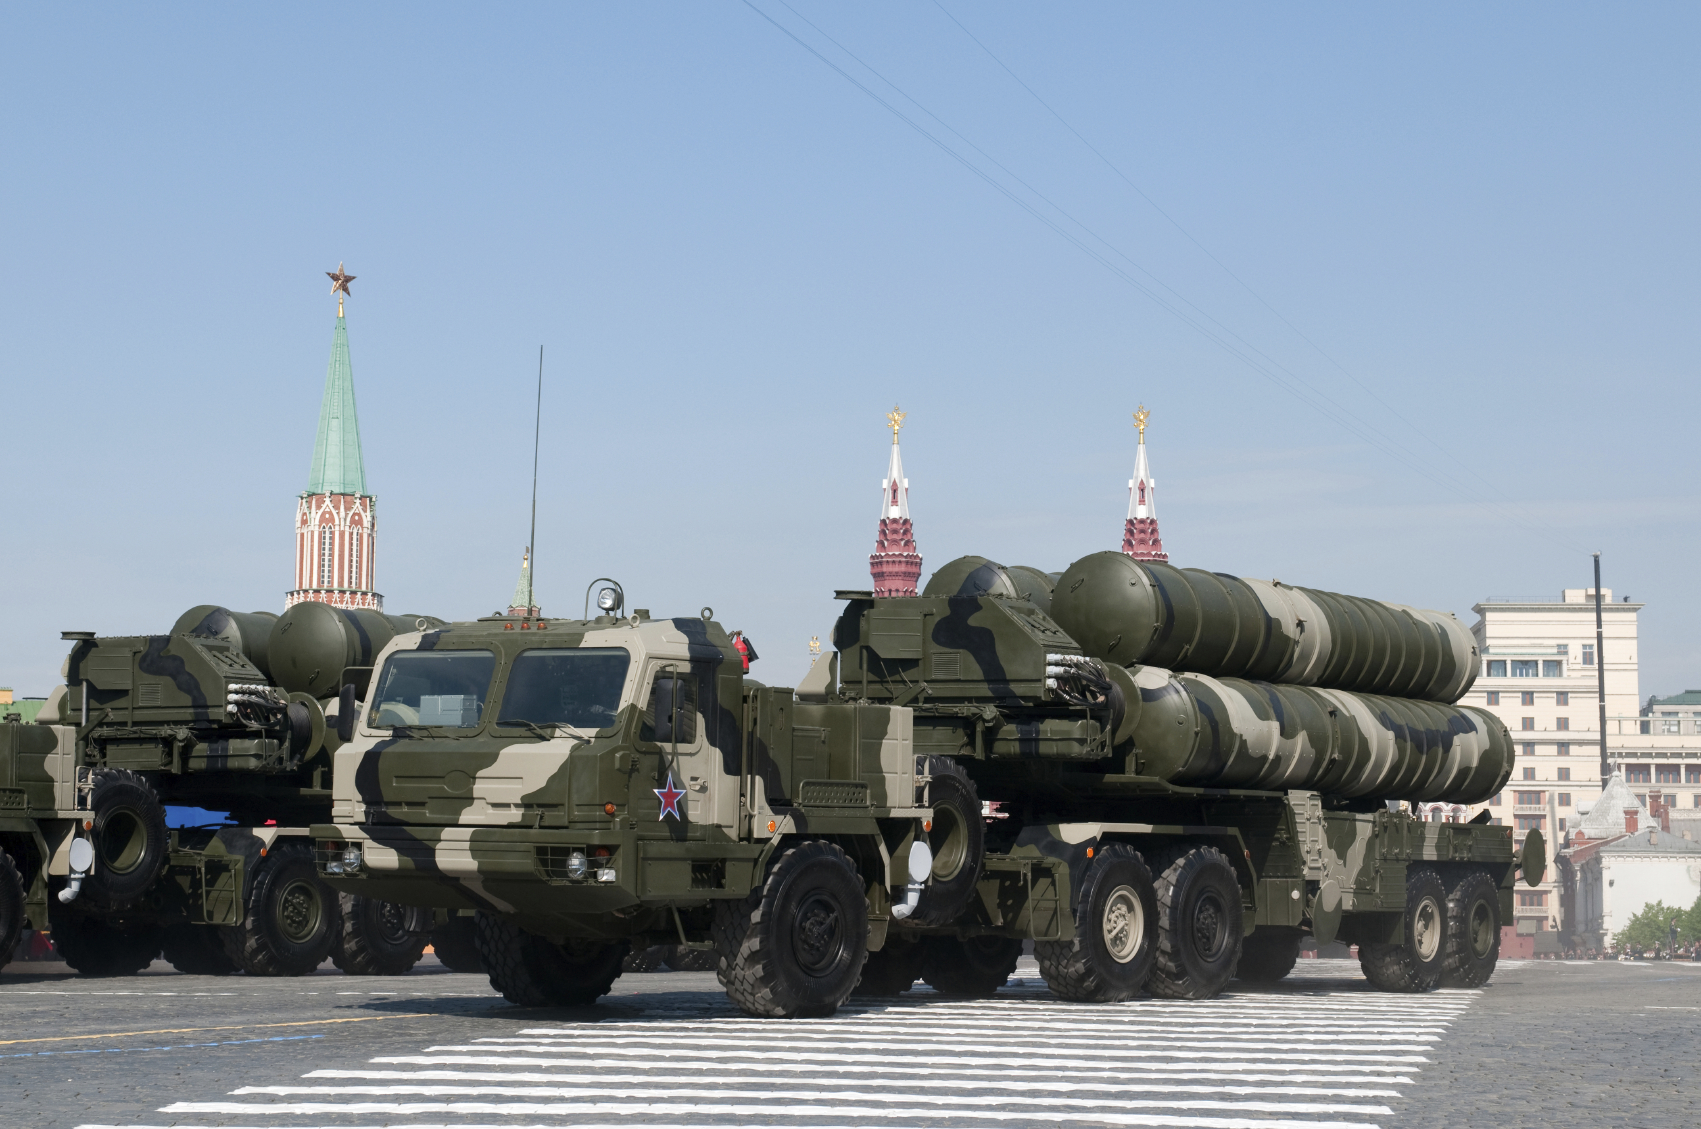 Rethinking deterrence and assurance: Russia's strategy relating to regional coercion and possible war and NATO's response (WP1470)